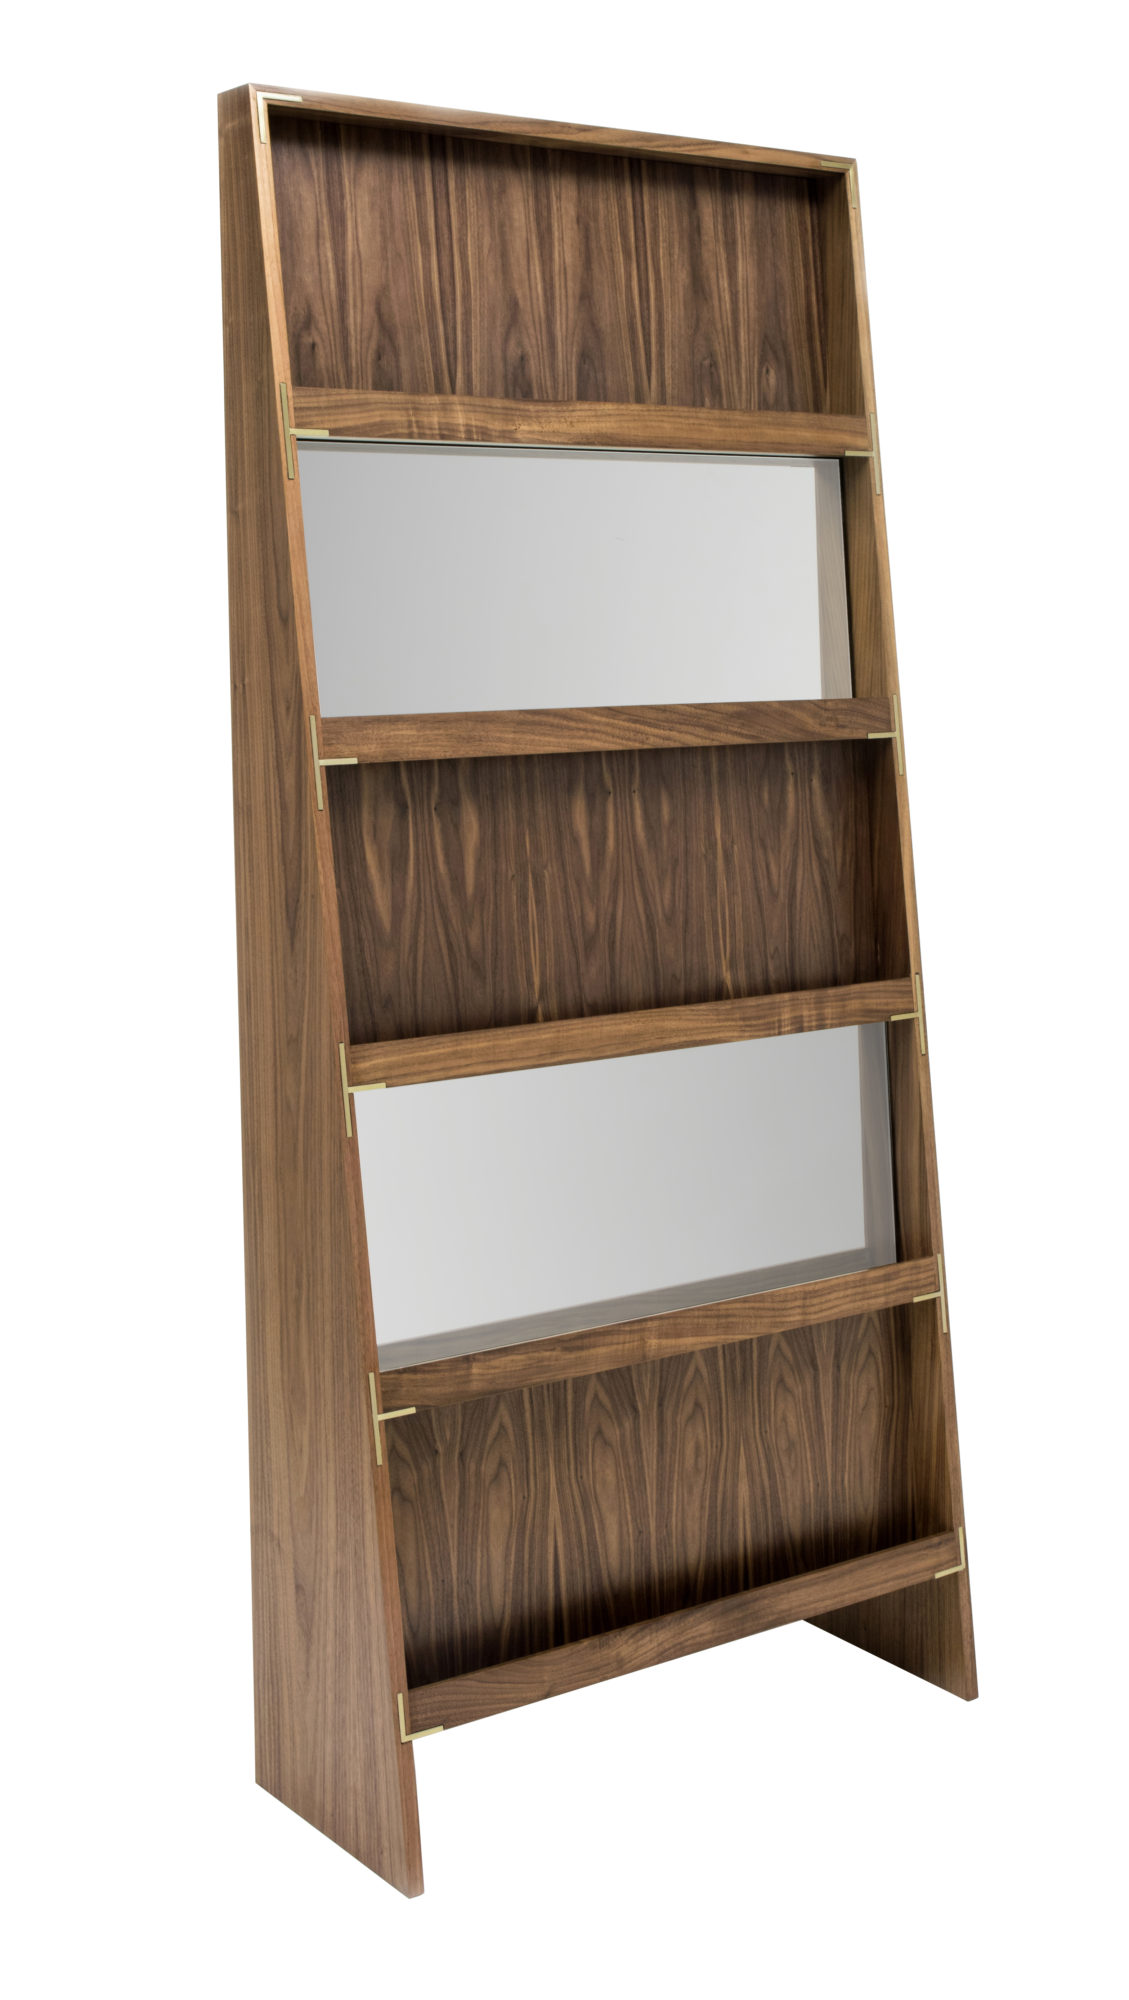 Product Shown: Stacy Garcia for D'Style by Kimball Hospitality: Oslo Magazine Rack